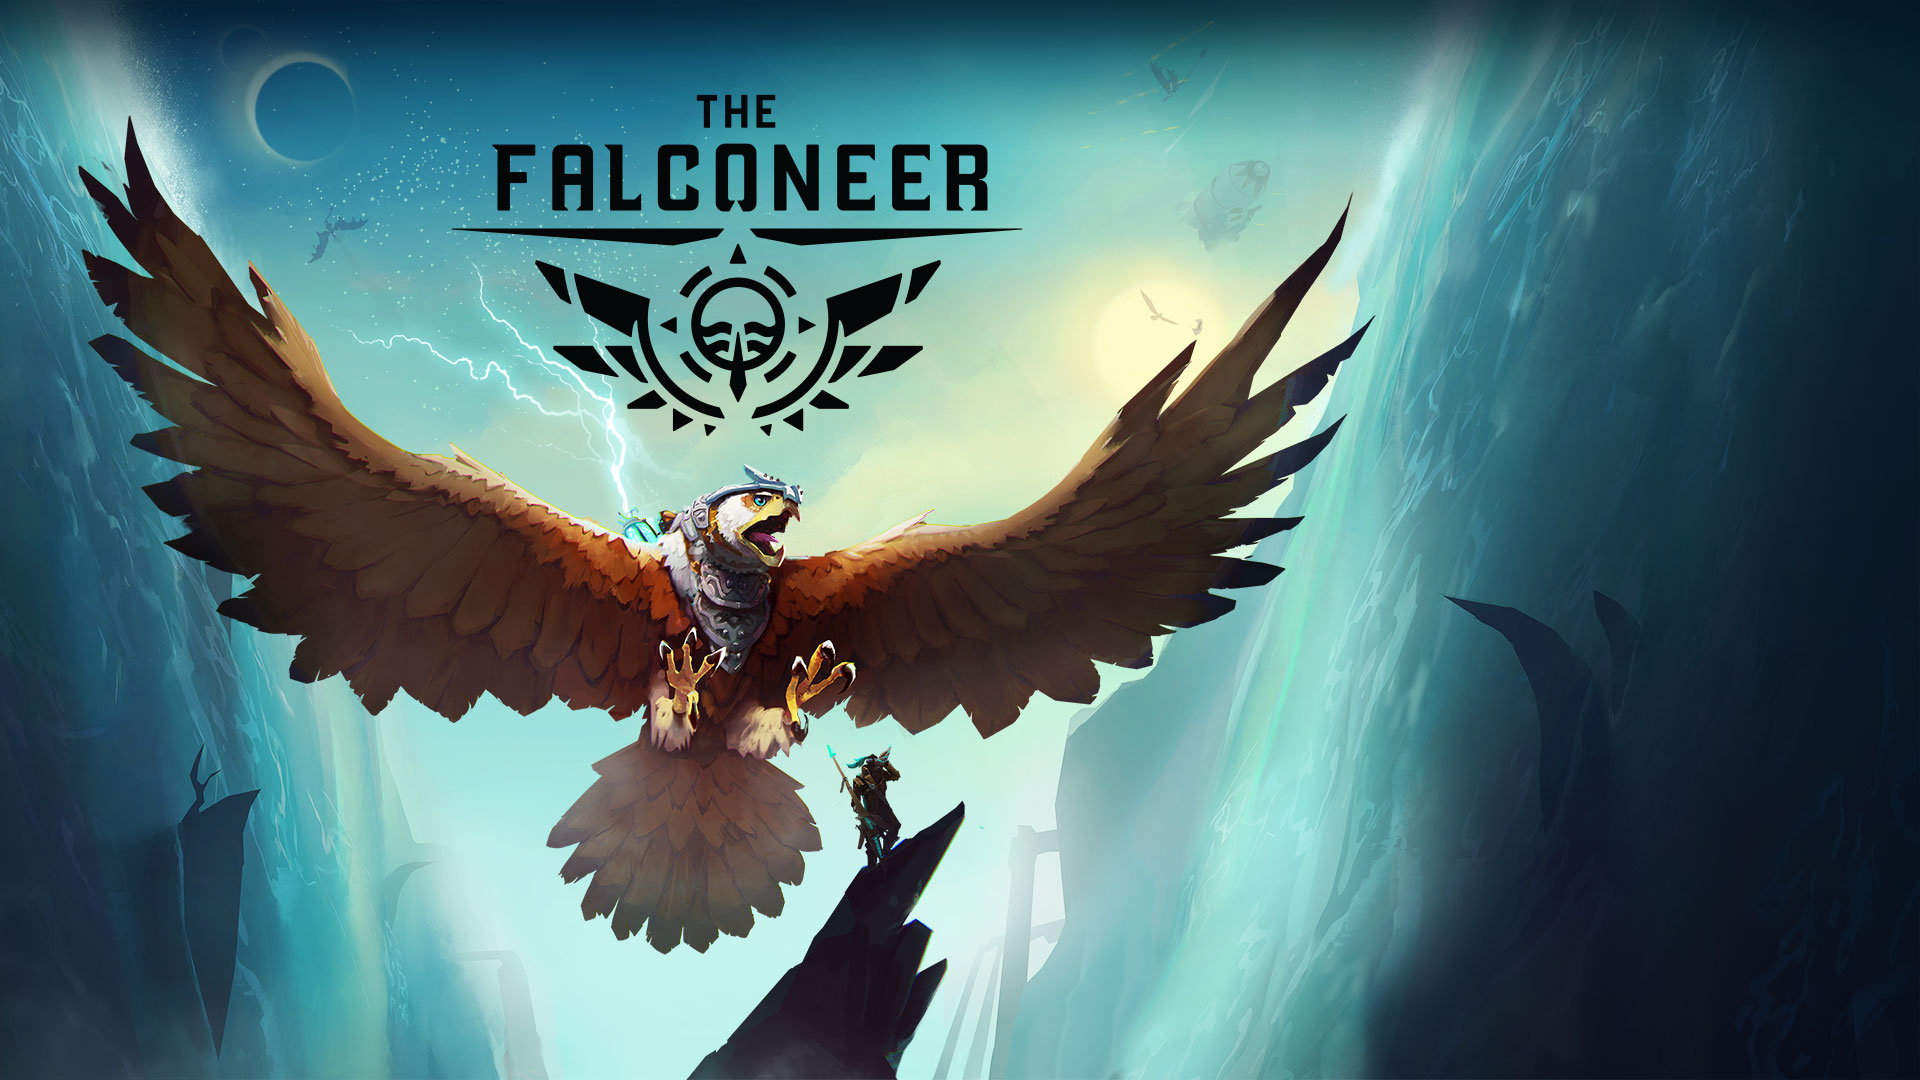 The Falconeer, a giant falcon stretches its wings behind a standing Rider.